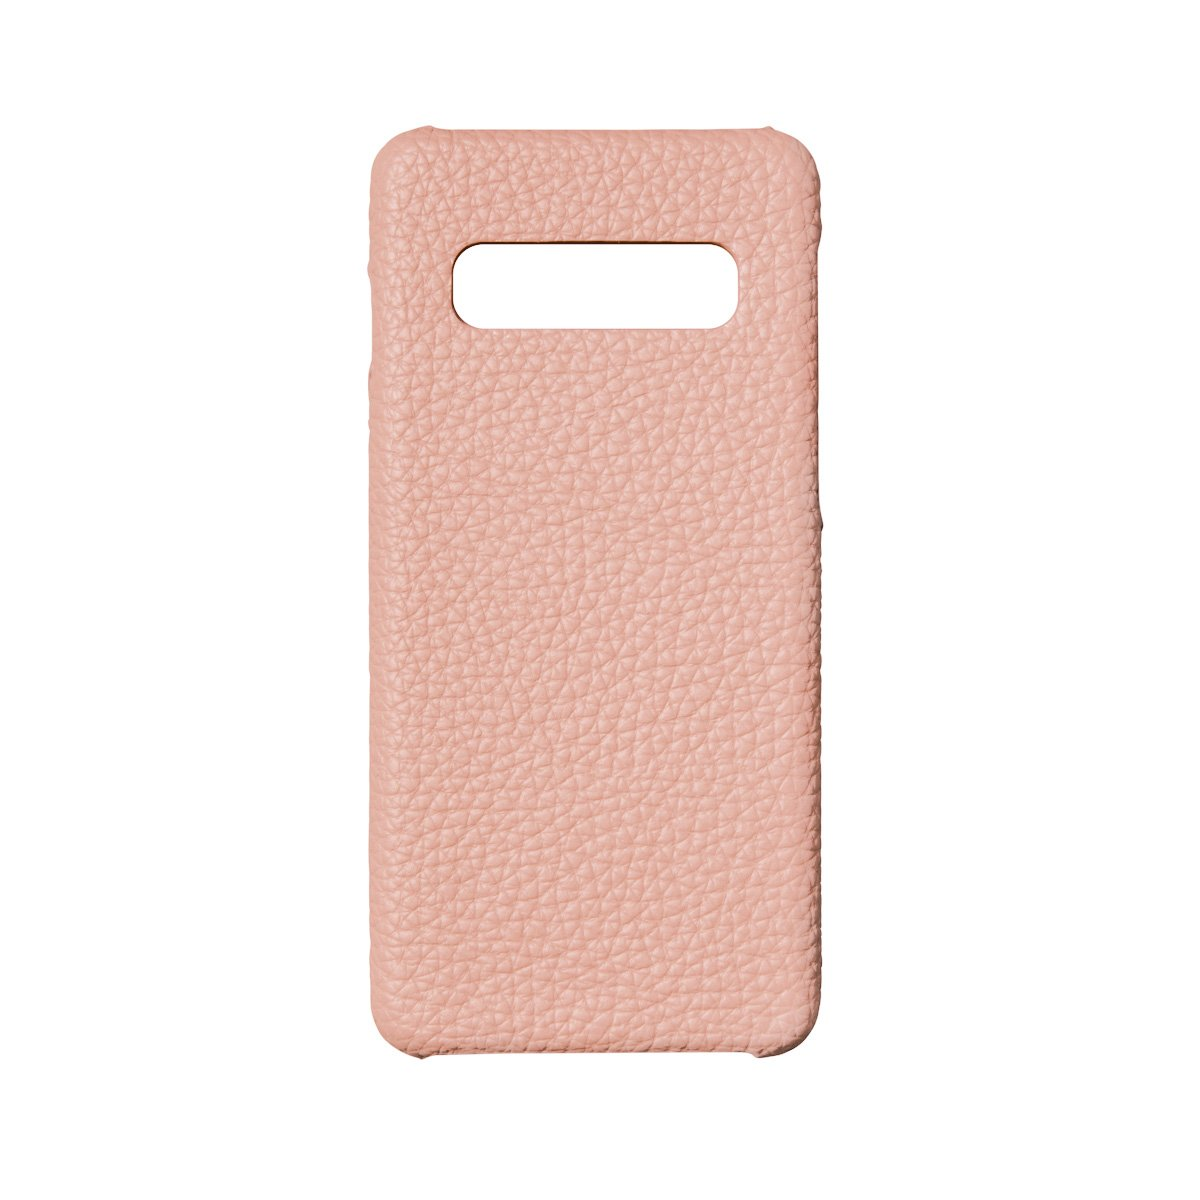 Blush Pink Phone Case (Samsung 10+)